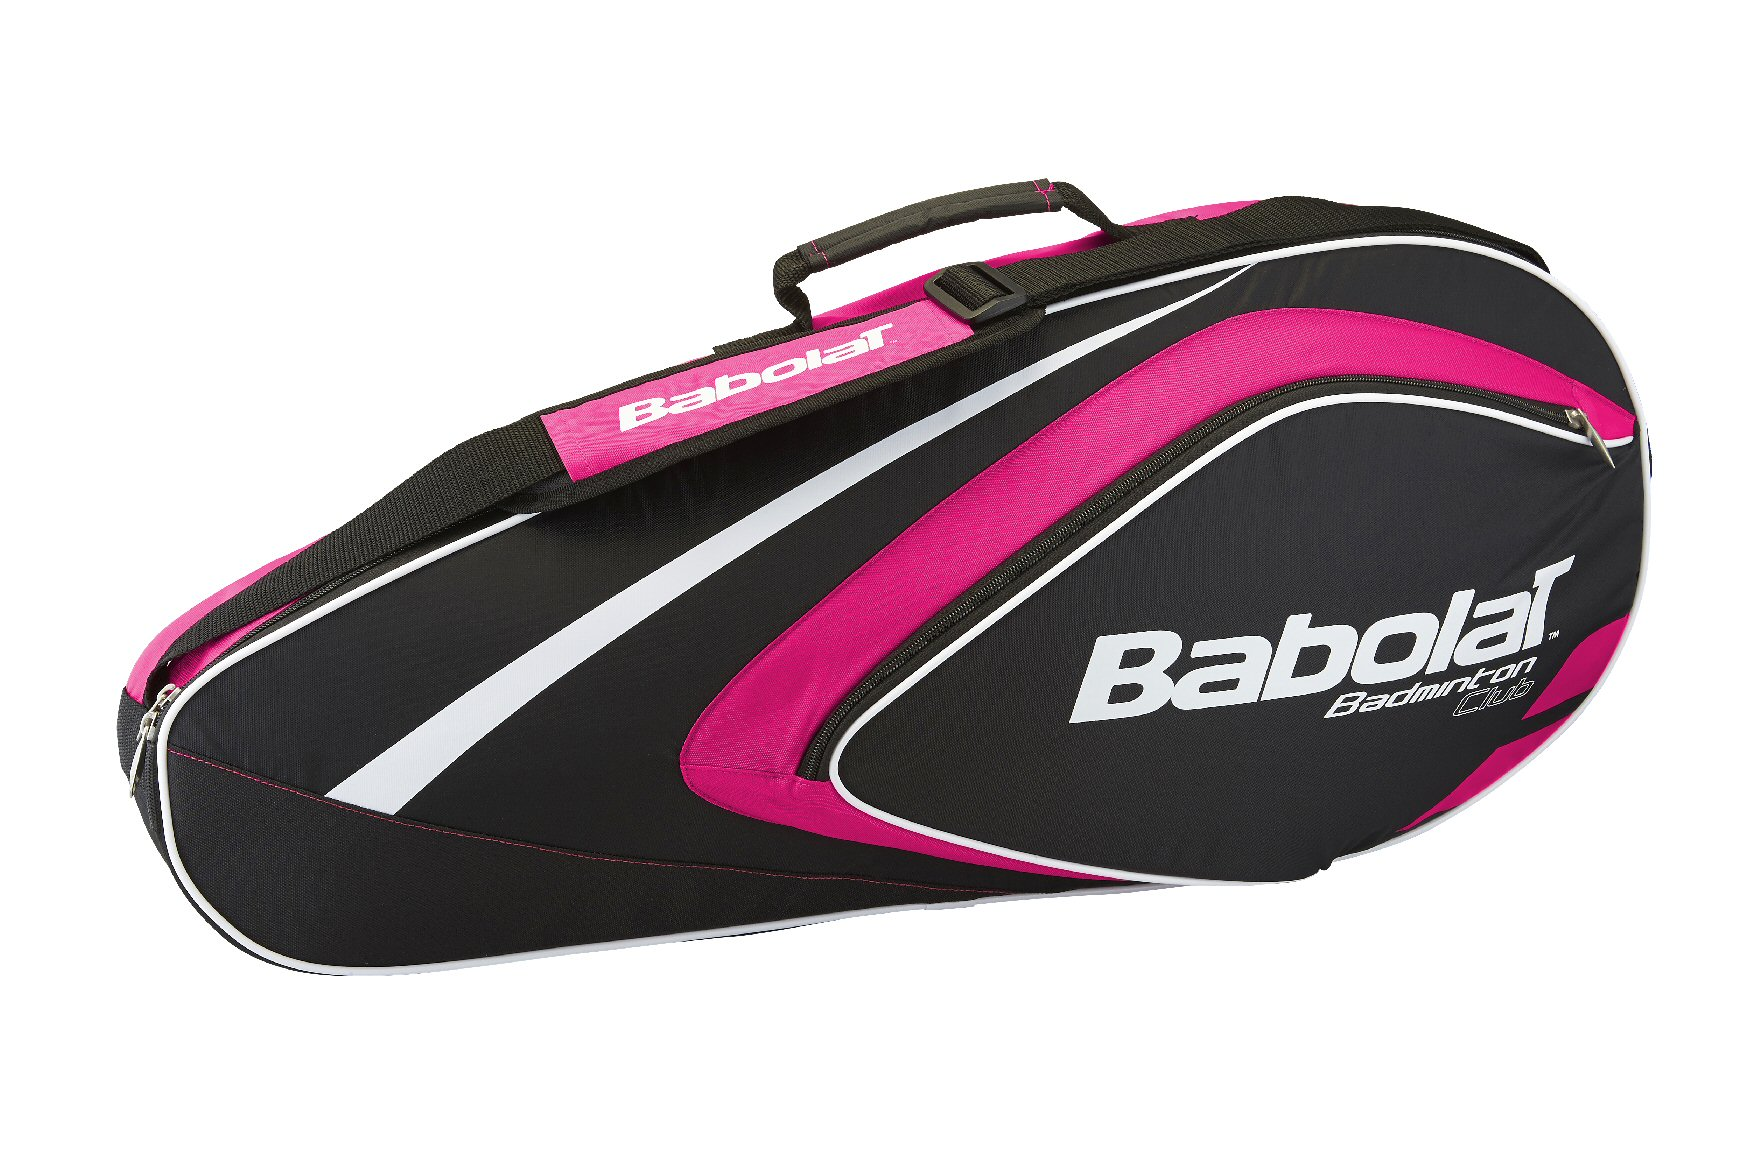 Babolat Badminton Club Line Racket Holder X8 Pink 2015